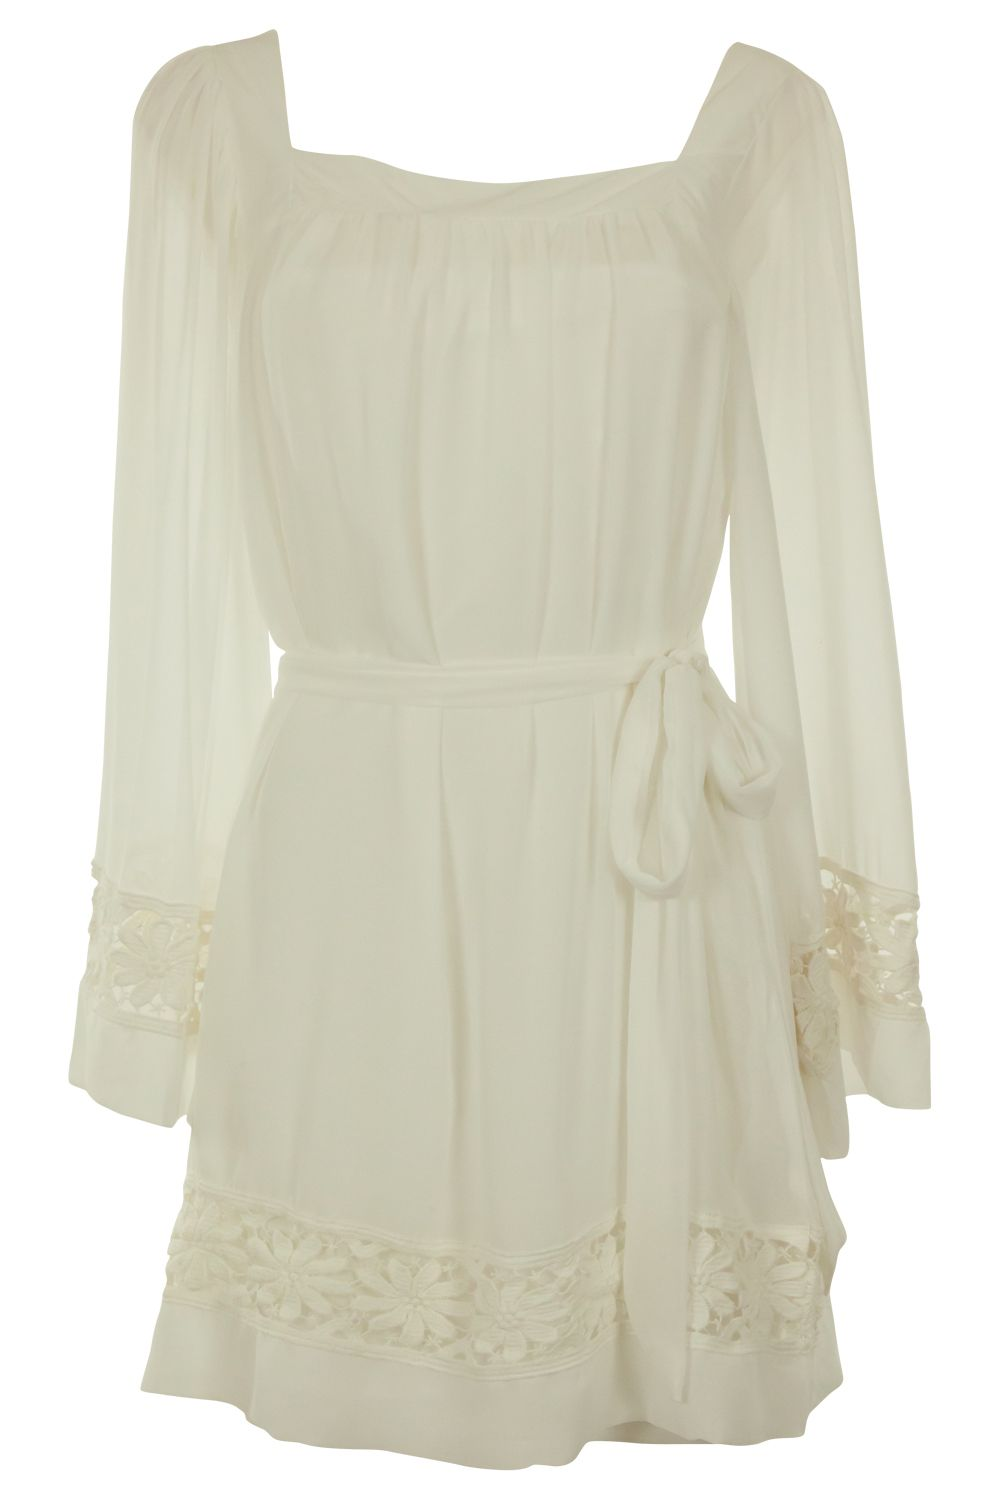 in a fantasy world, i would look so hot in this white dress. lol.